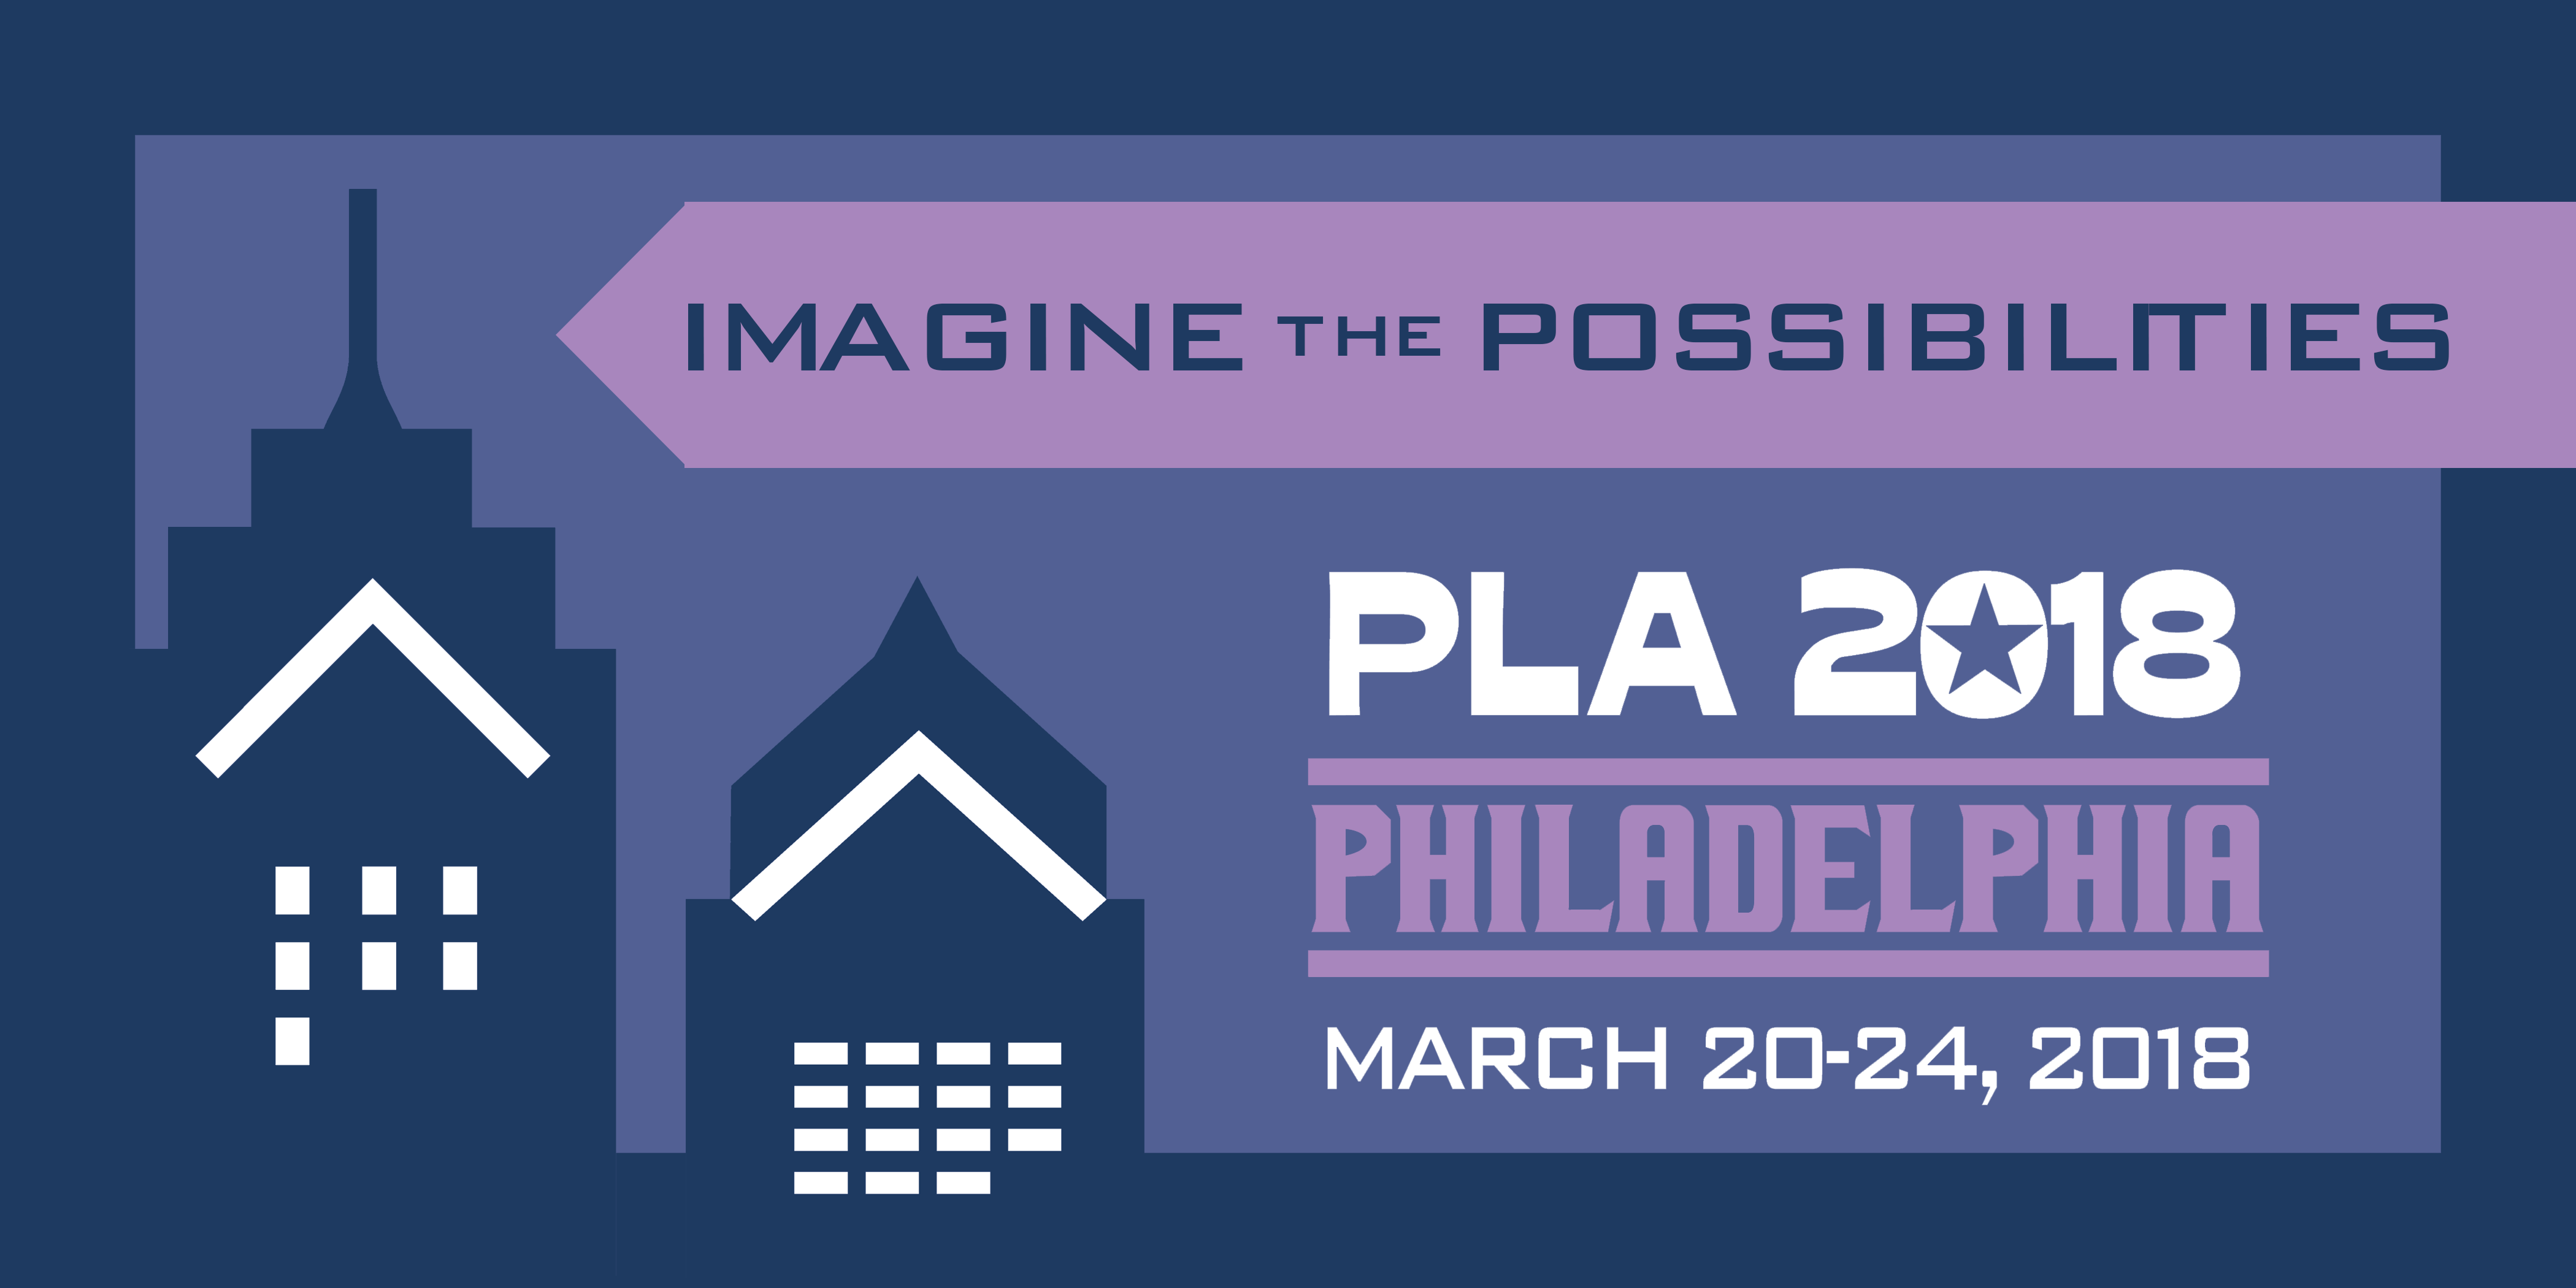 PLA 2018 Imagine the Possibilities Banner